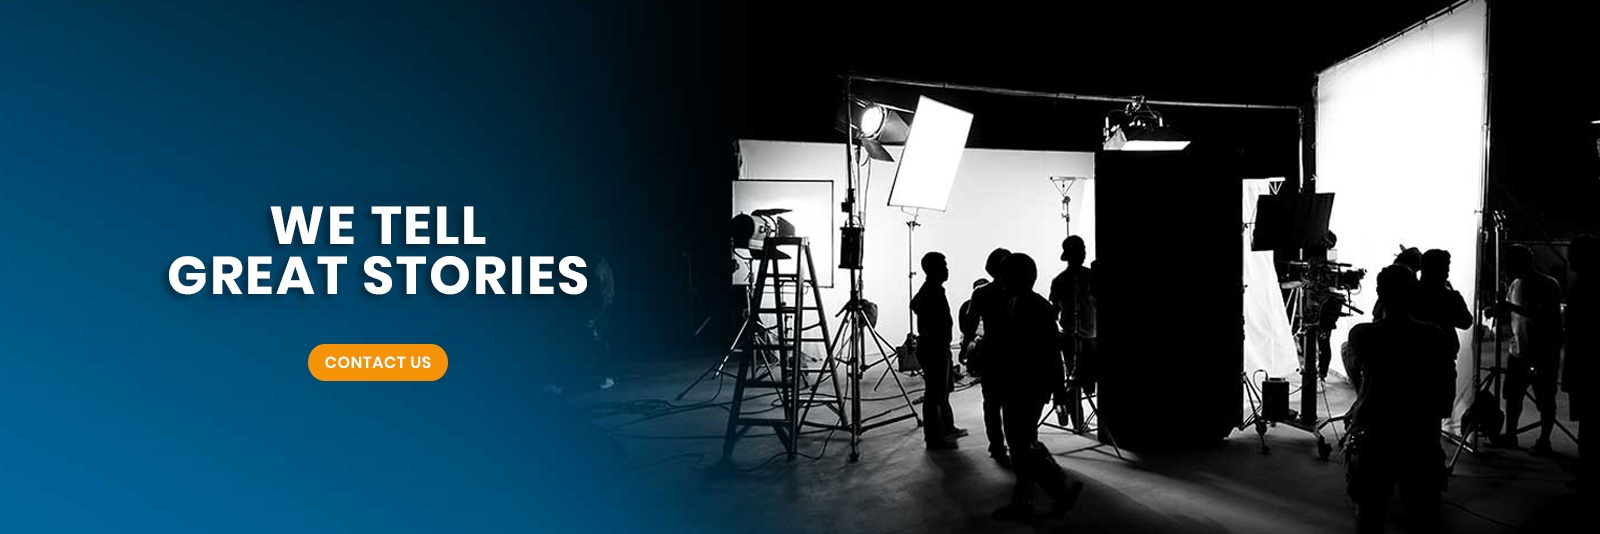 Full Service Video Production by Tetra Films - Corporate Video Production Company Vancouver